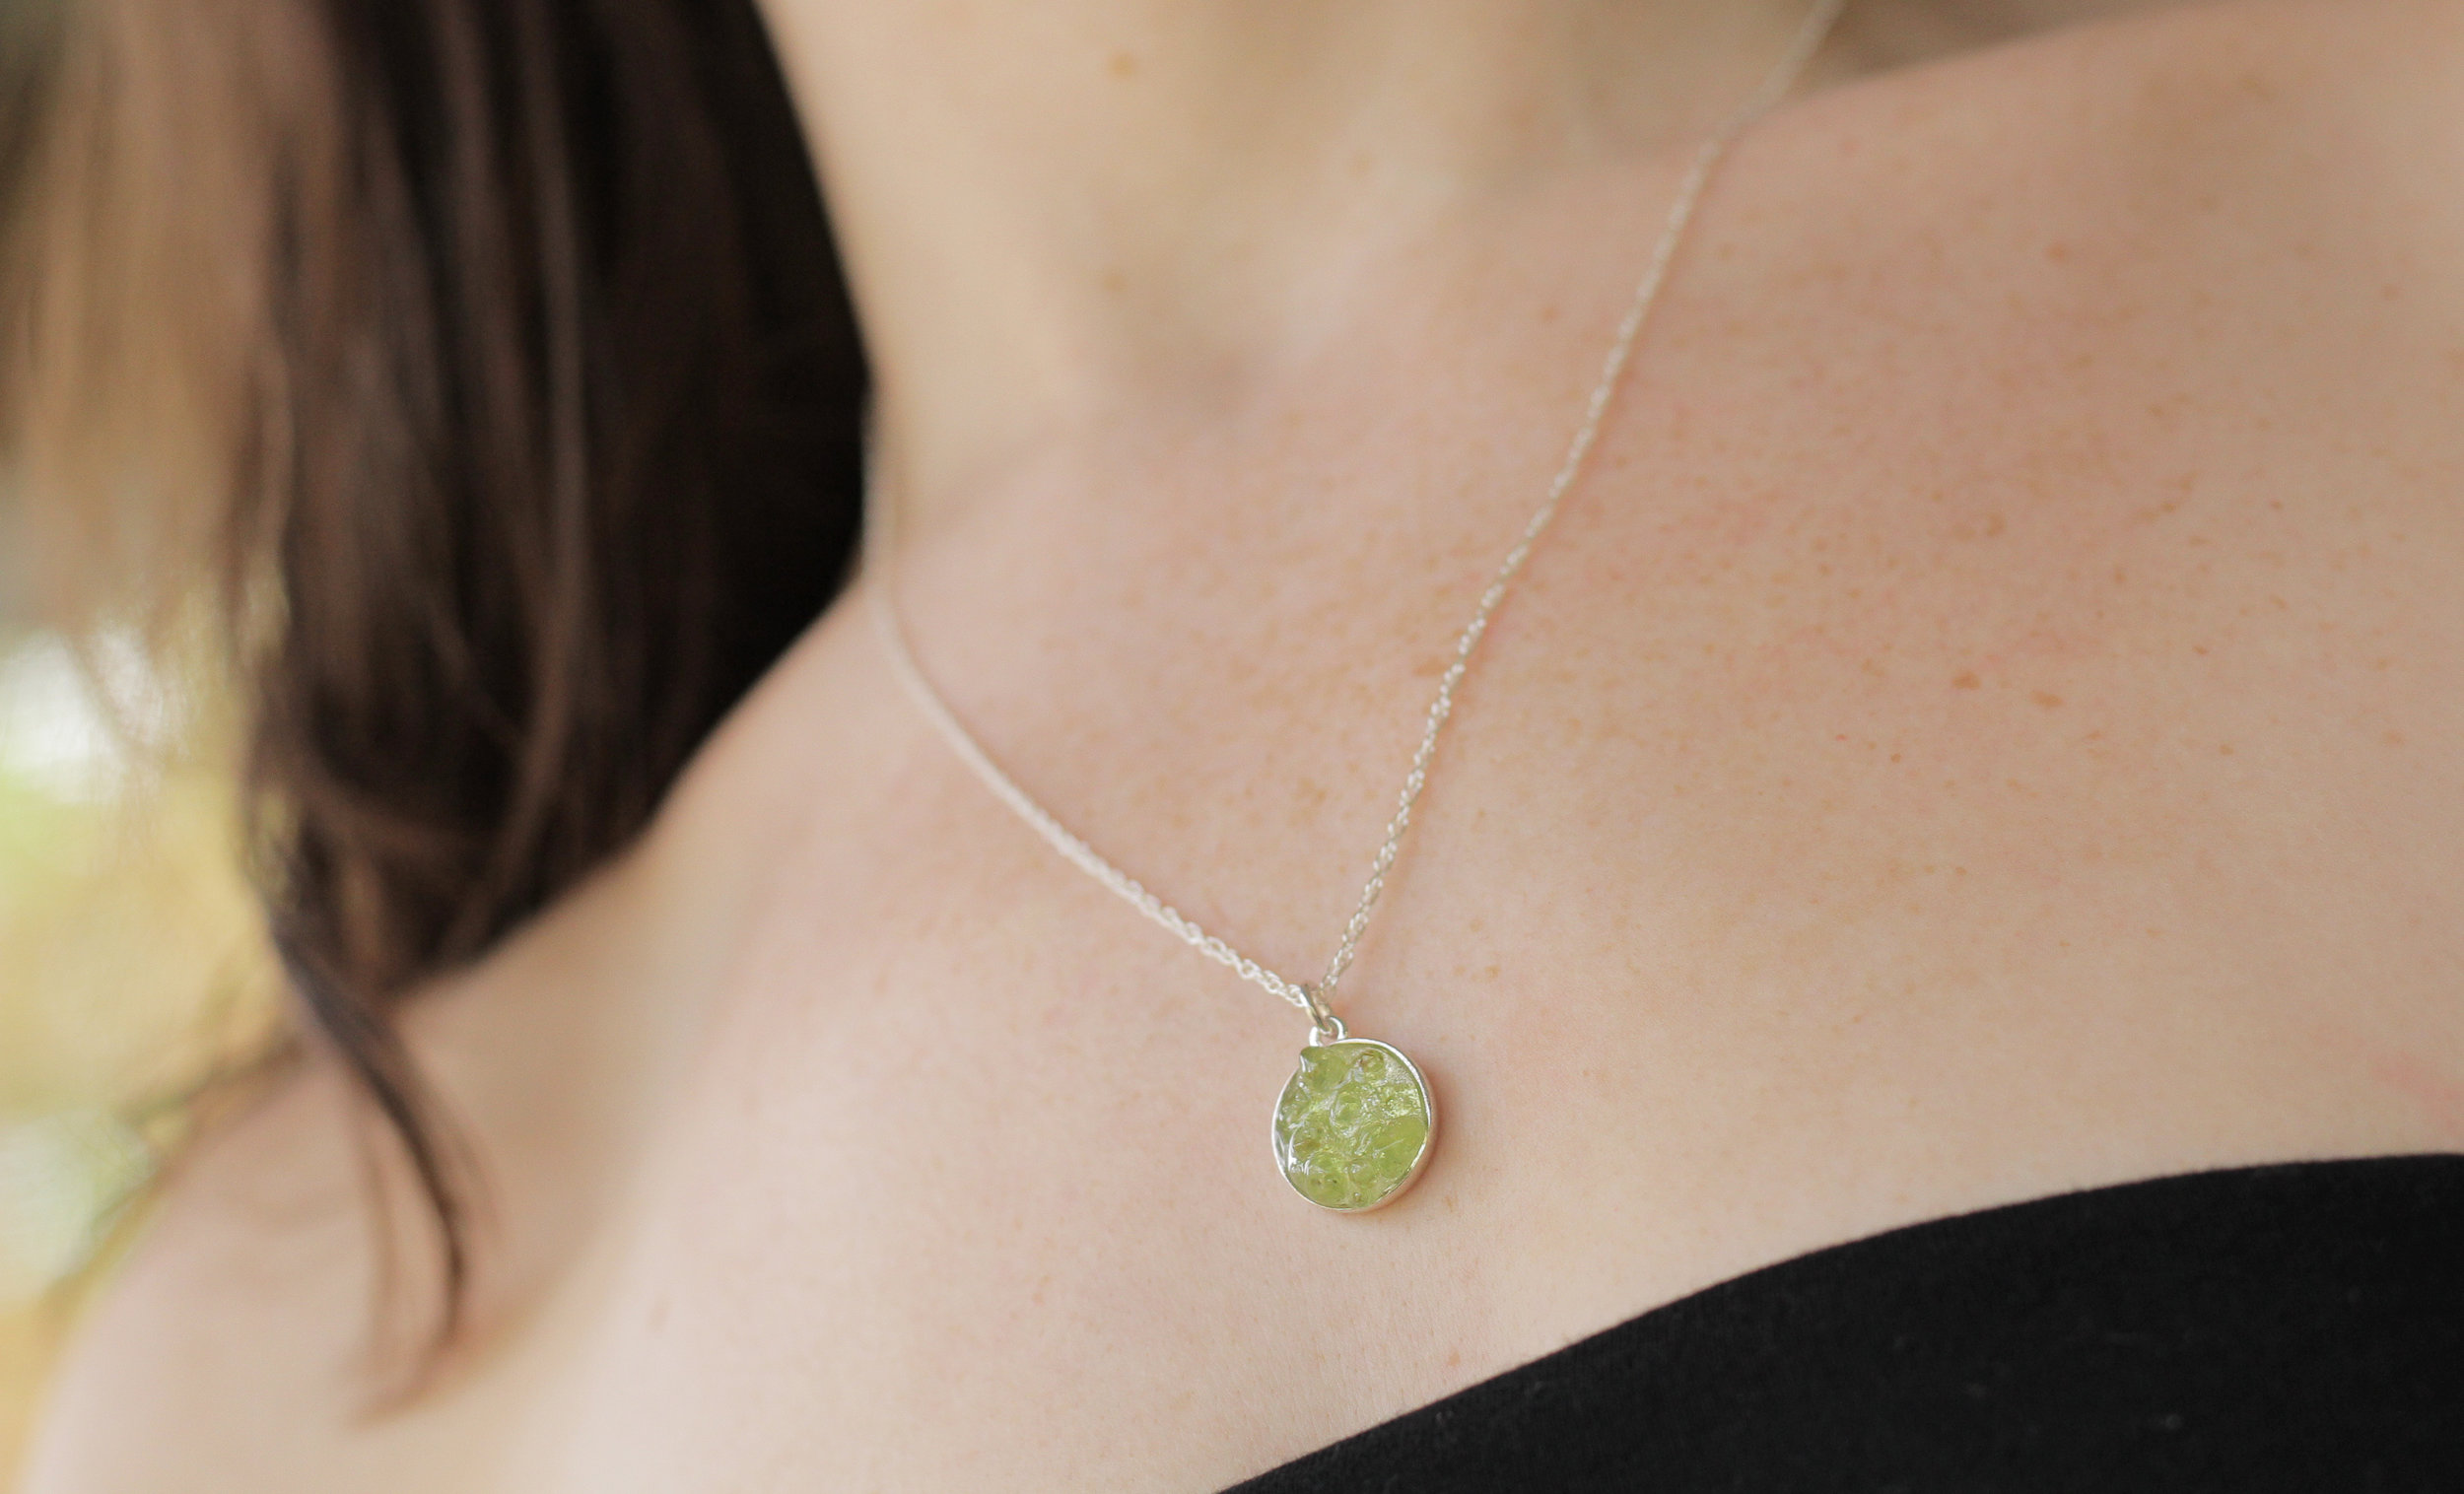 Peridot, the August birthstone, is known for its otherworldly green glow. Find your birthstone in Bang-Up Betty's  birthstone cluster collection , inspired by nature and using raw, rough and chip natural stones.